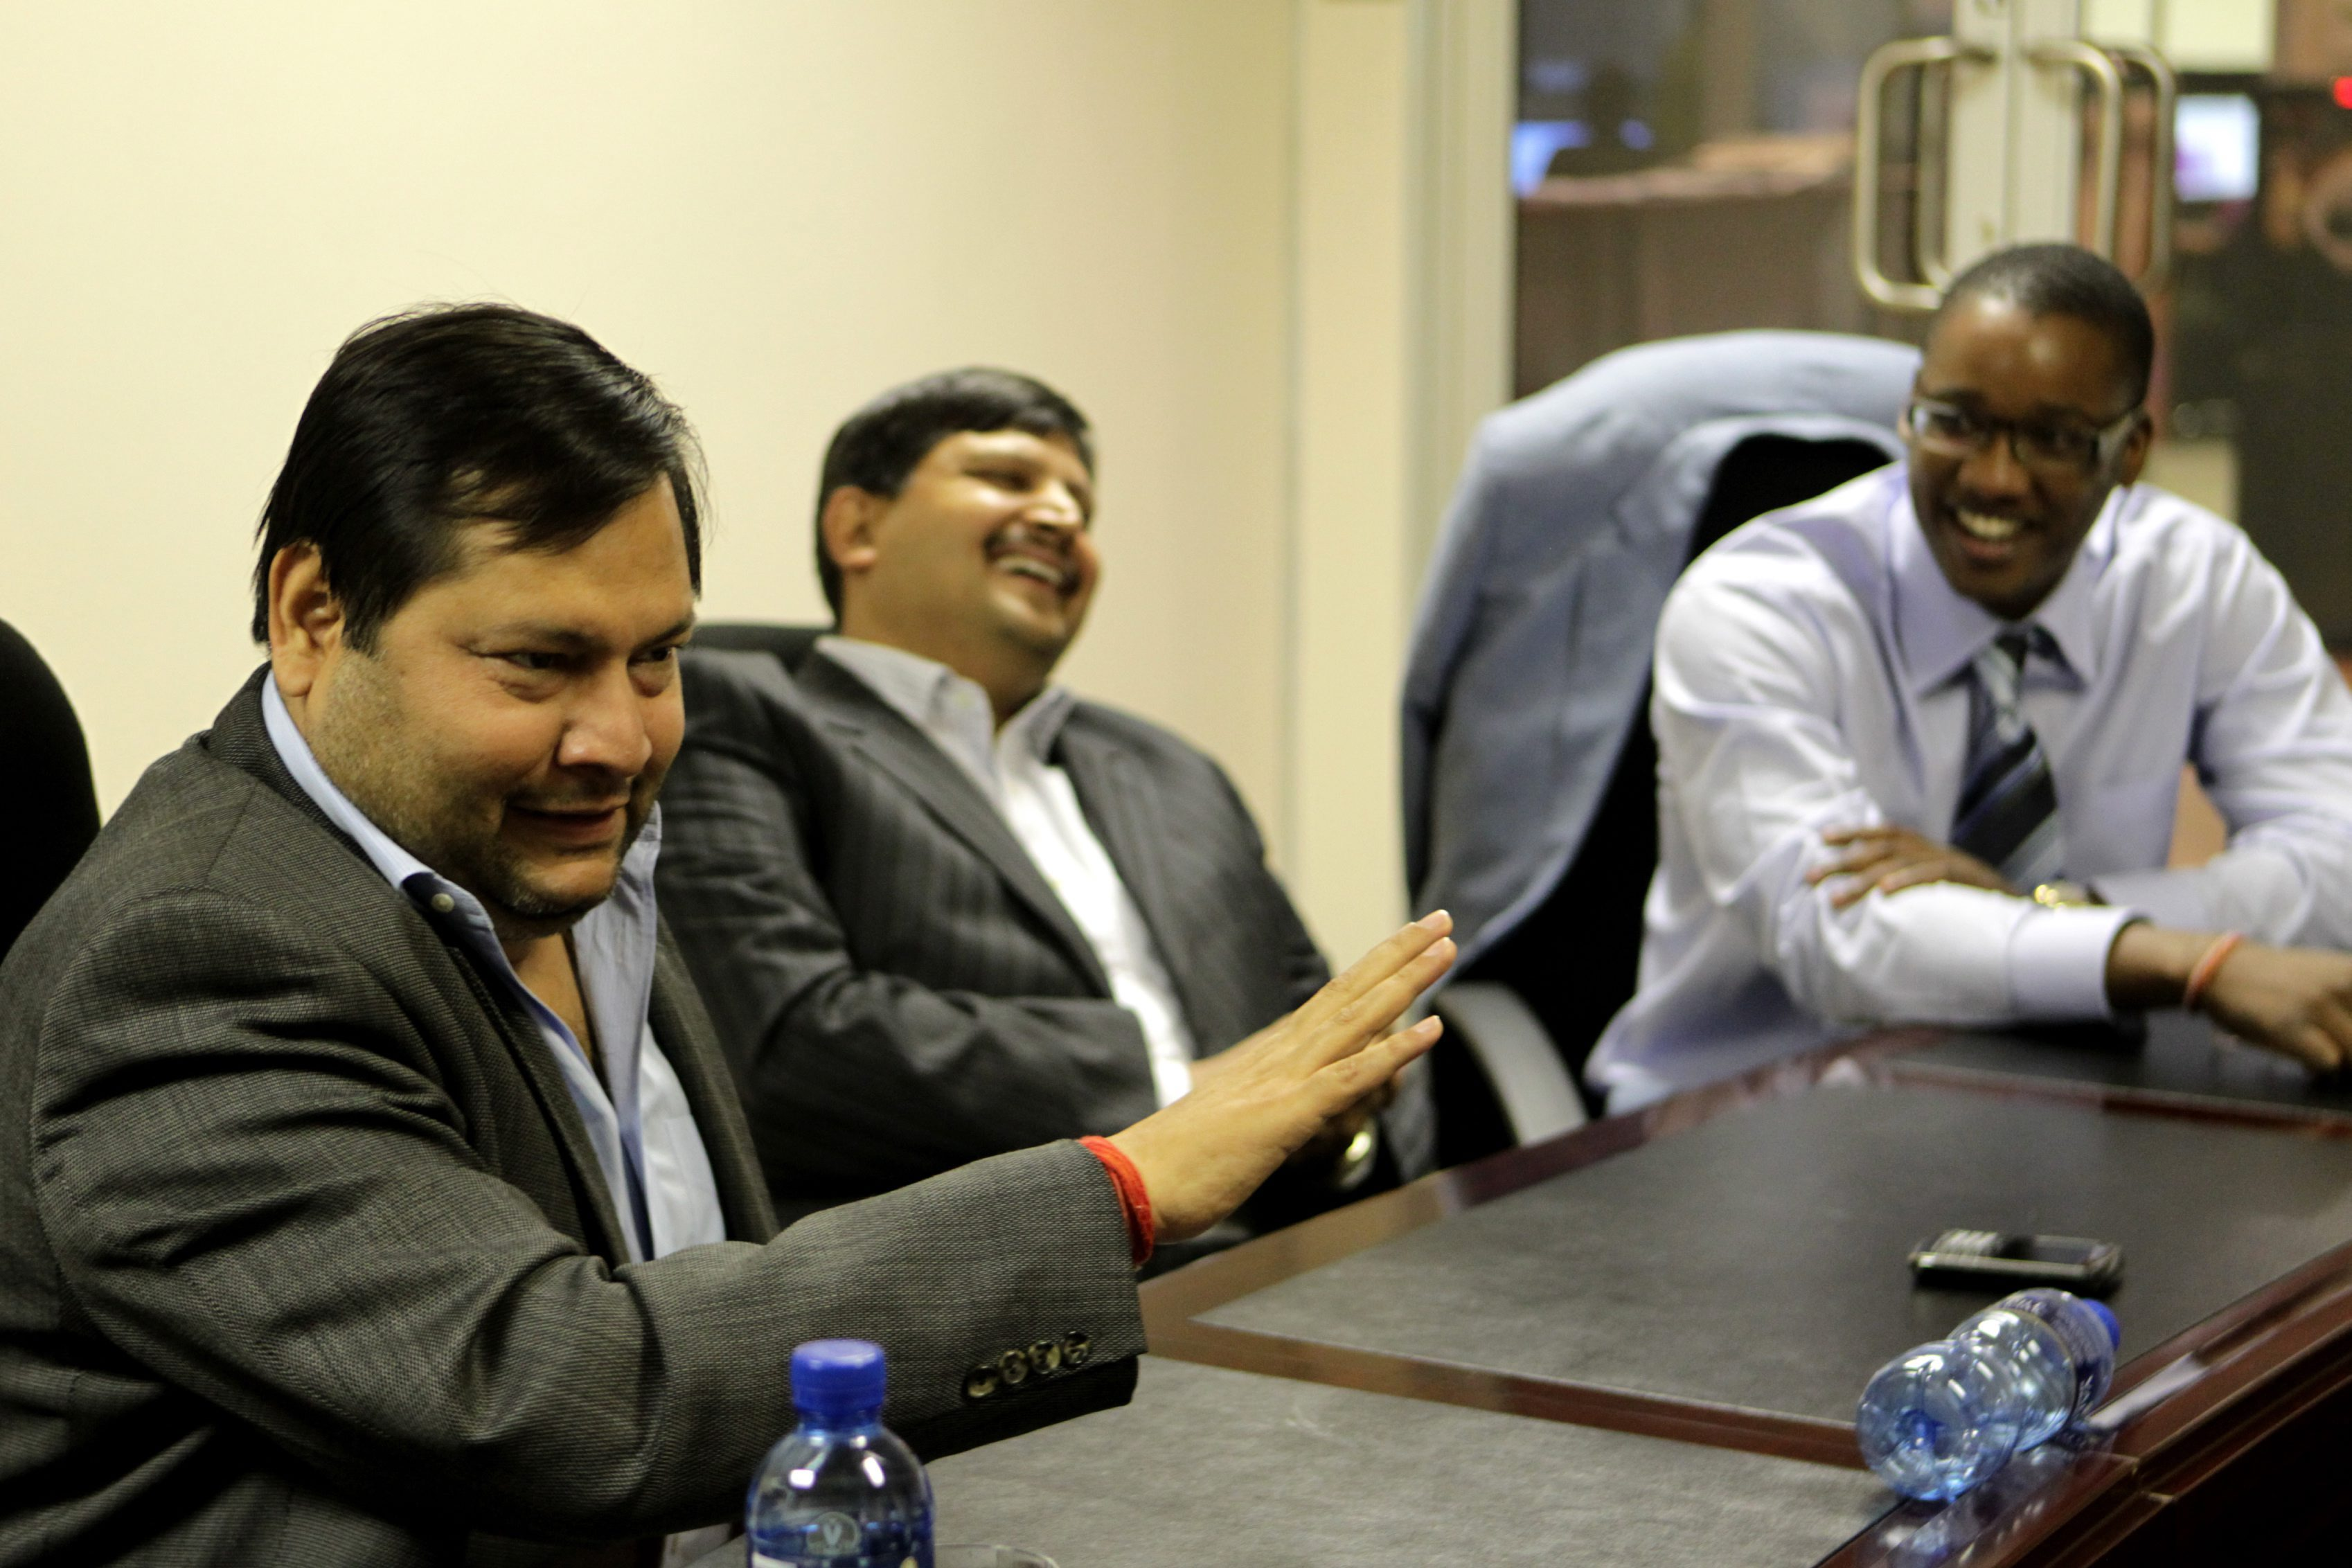 JOHANNESBURG, SOUTH AFRICA - 4 March 2011: Indian businessmen Ajay and Atul Gupta, and Sahara director, Duduzane Zuma speak to the City Press from the New Age Newspaper's offices in Midrand, Johannesburg, South Africa on 4 March 2011. (Photo by Gallo Images/City Press/Muntu Vilakazi)